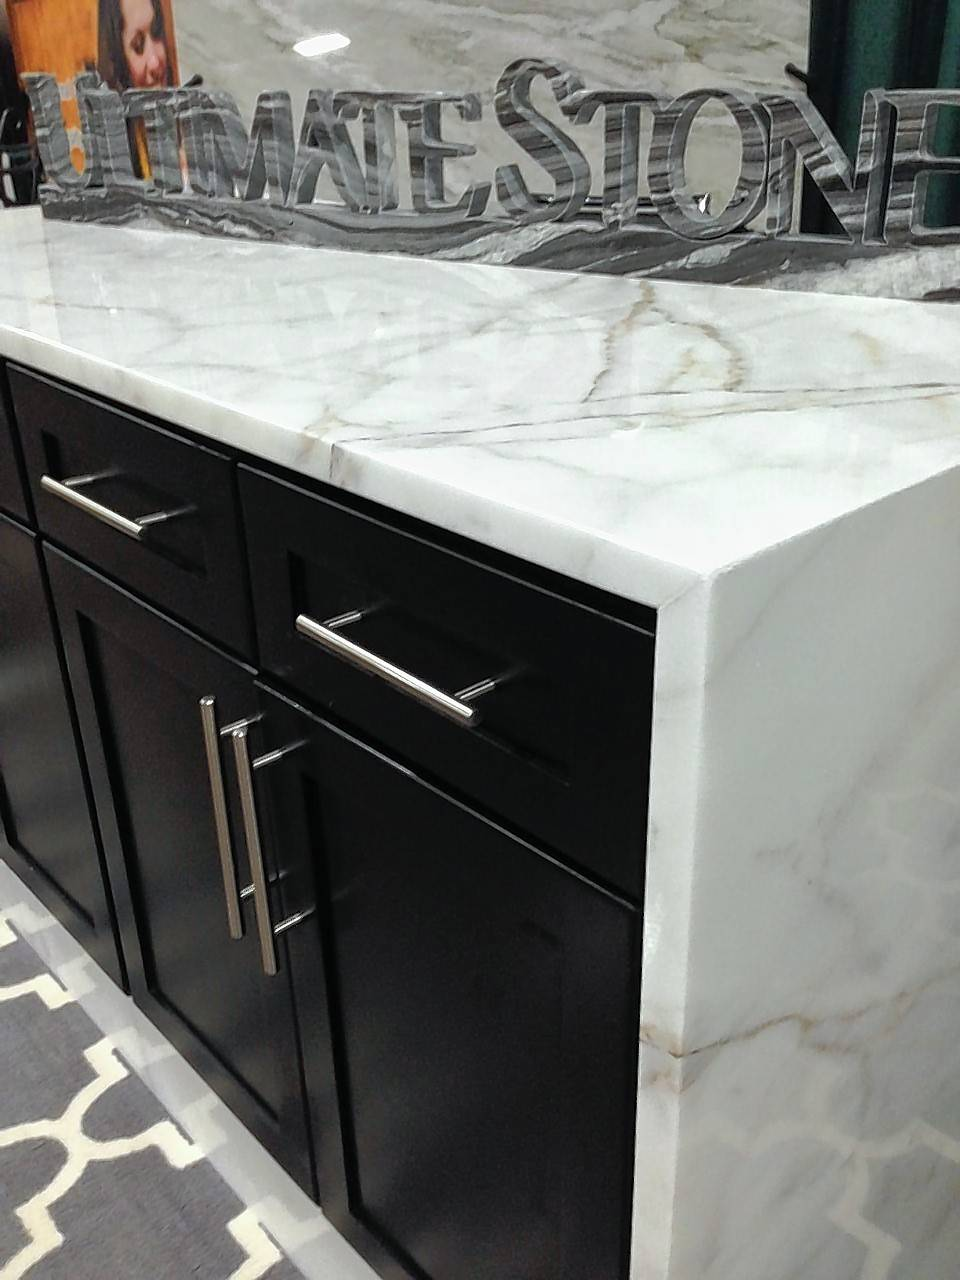 The Old House New House Home Show will include a variety of displays such as this marble countertop by Ultimate Stone, based in Elk Grove Village.